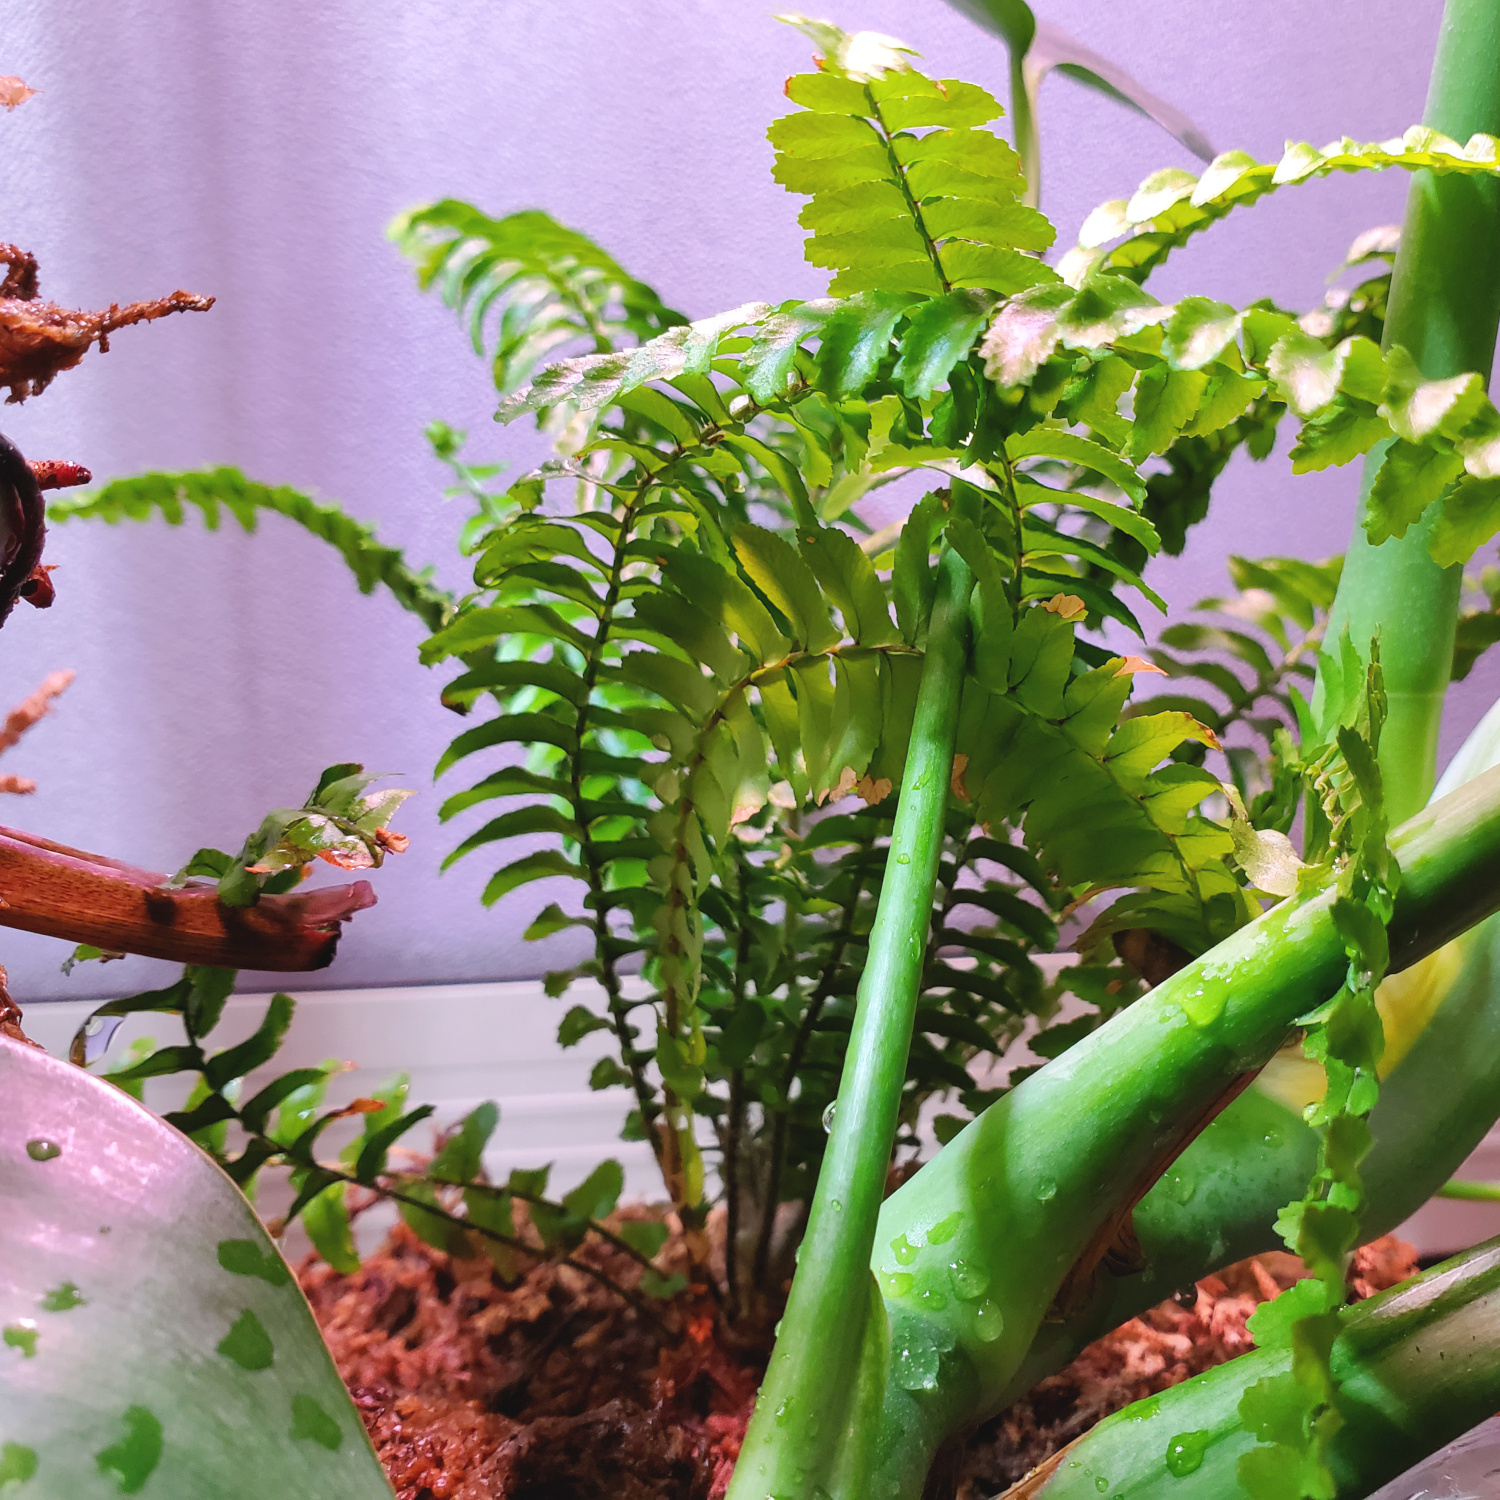 the fern is growing happily in the shade of the other plants